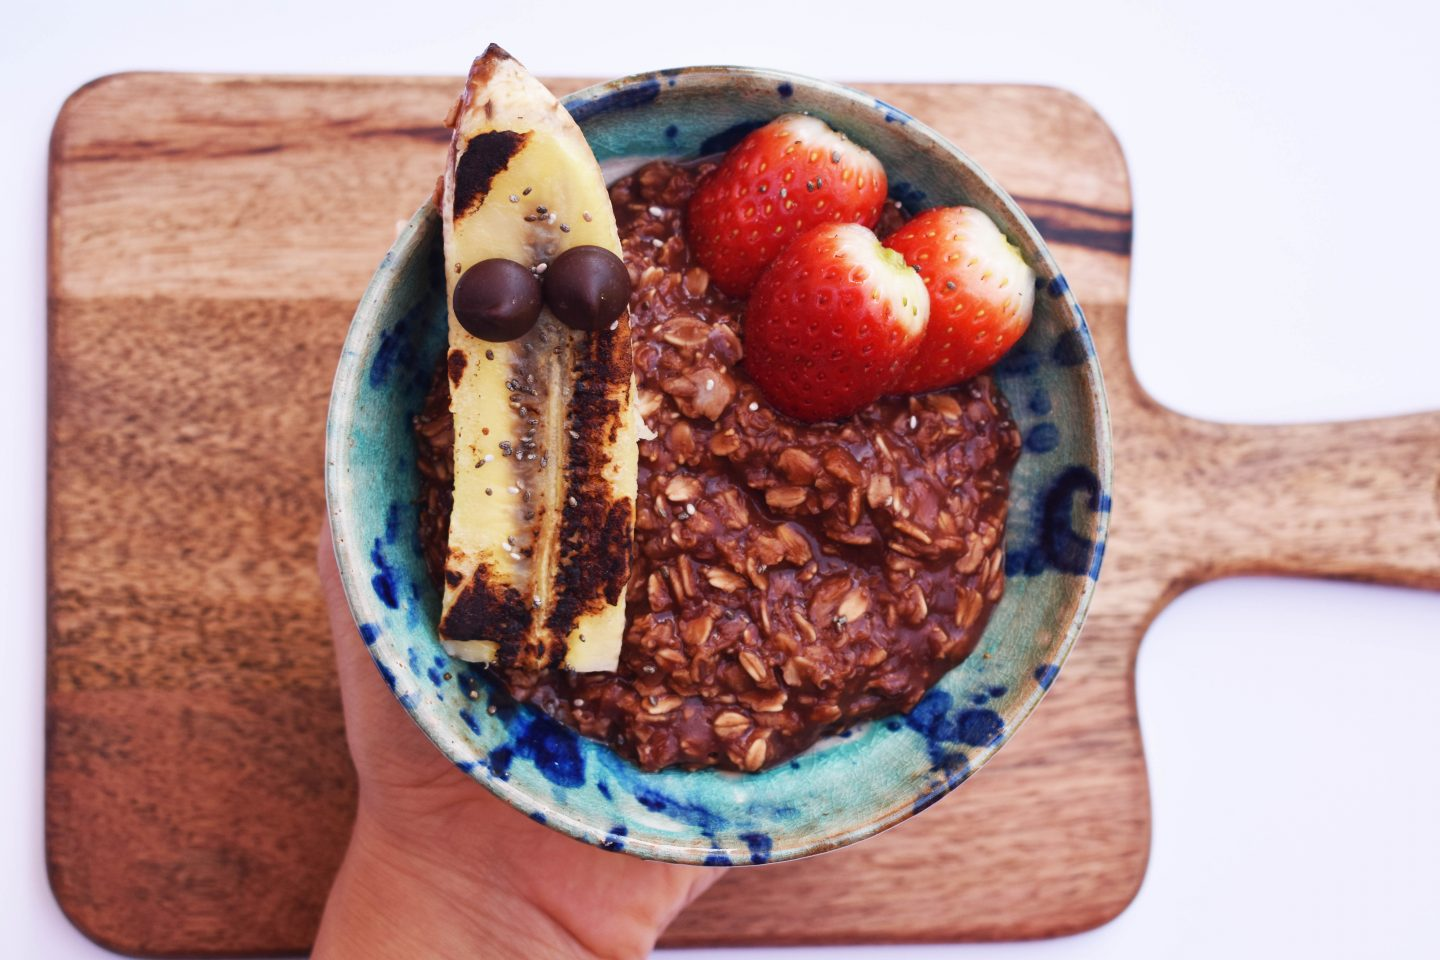 Warm Chocolate Oatmeal